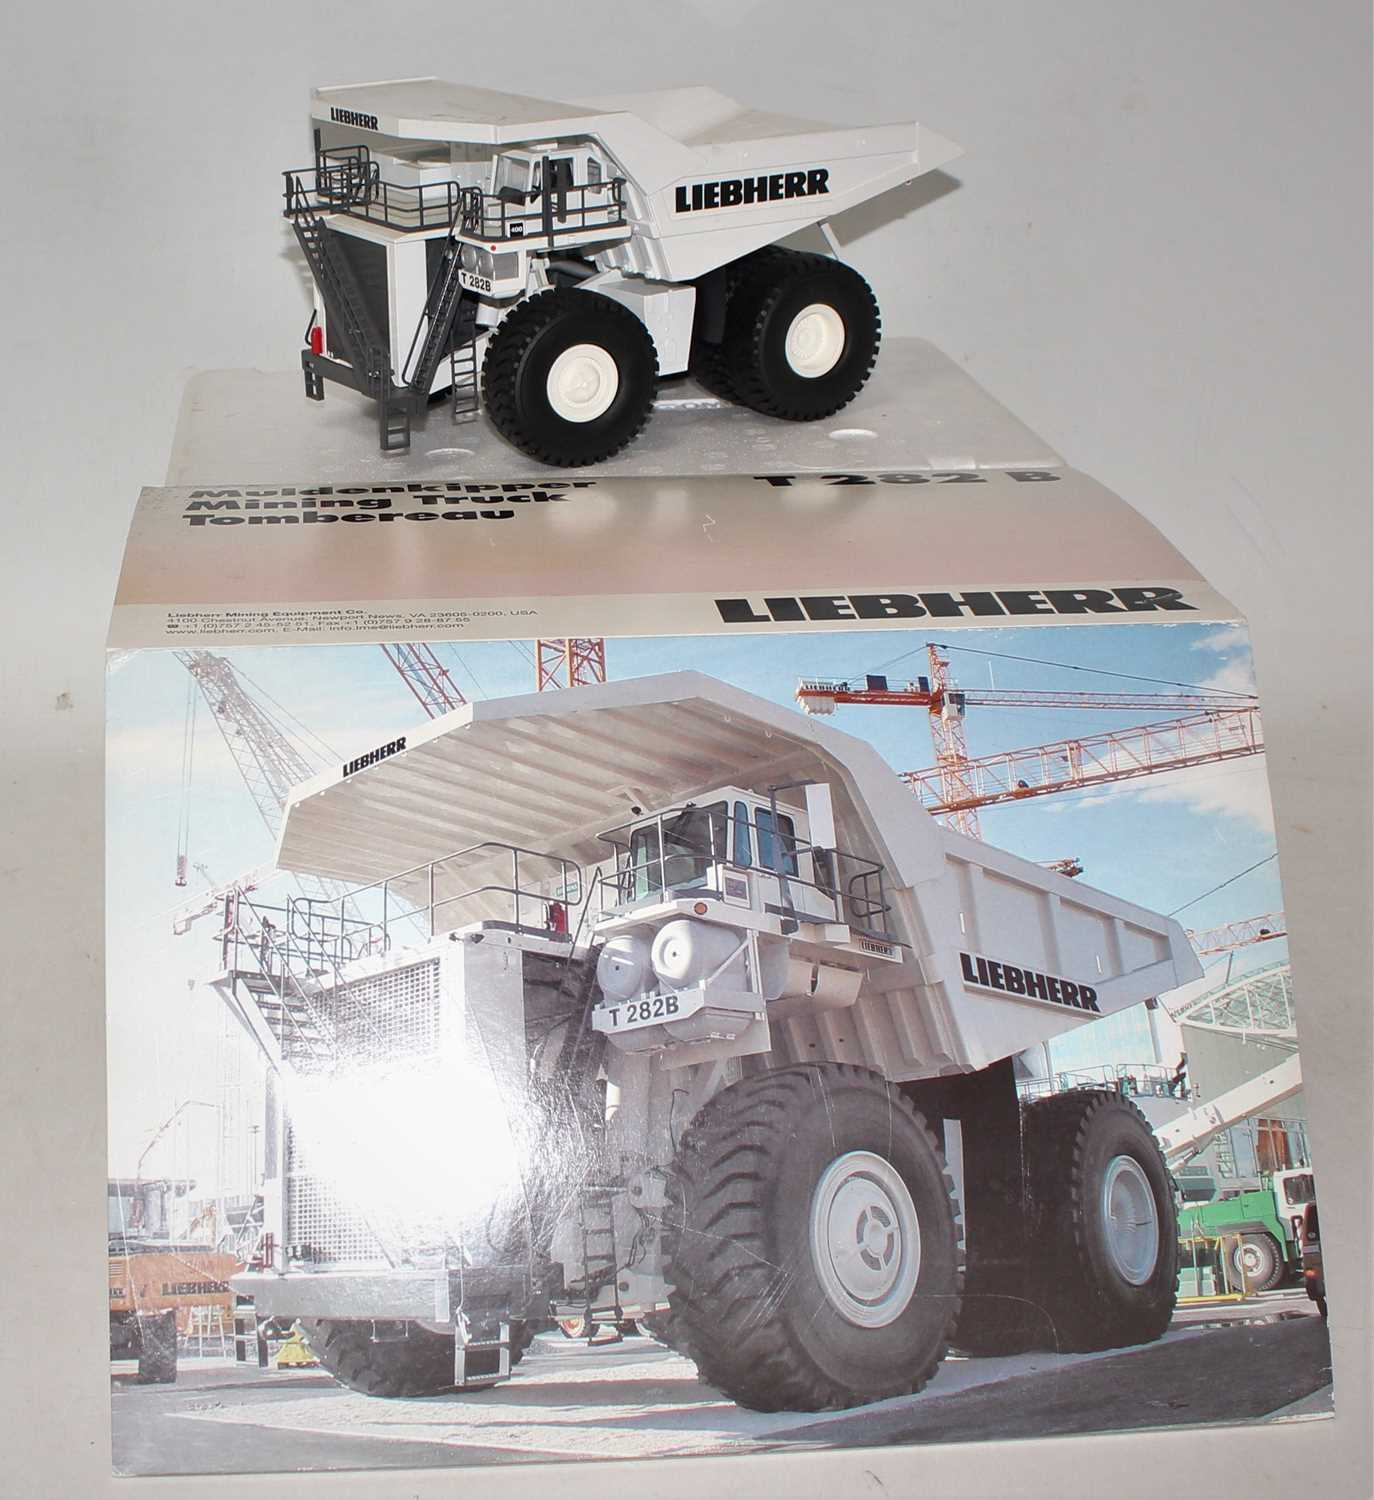 A Conrad Model No. 2727/0 1/50 scale diecast model of a Liebherr T282B mining truck, finished in